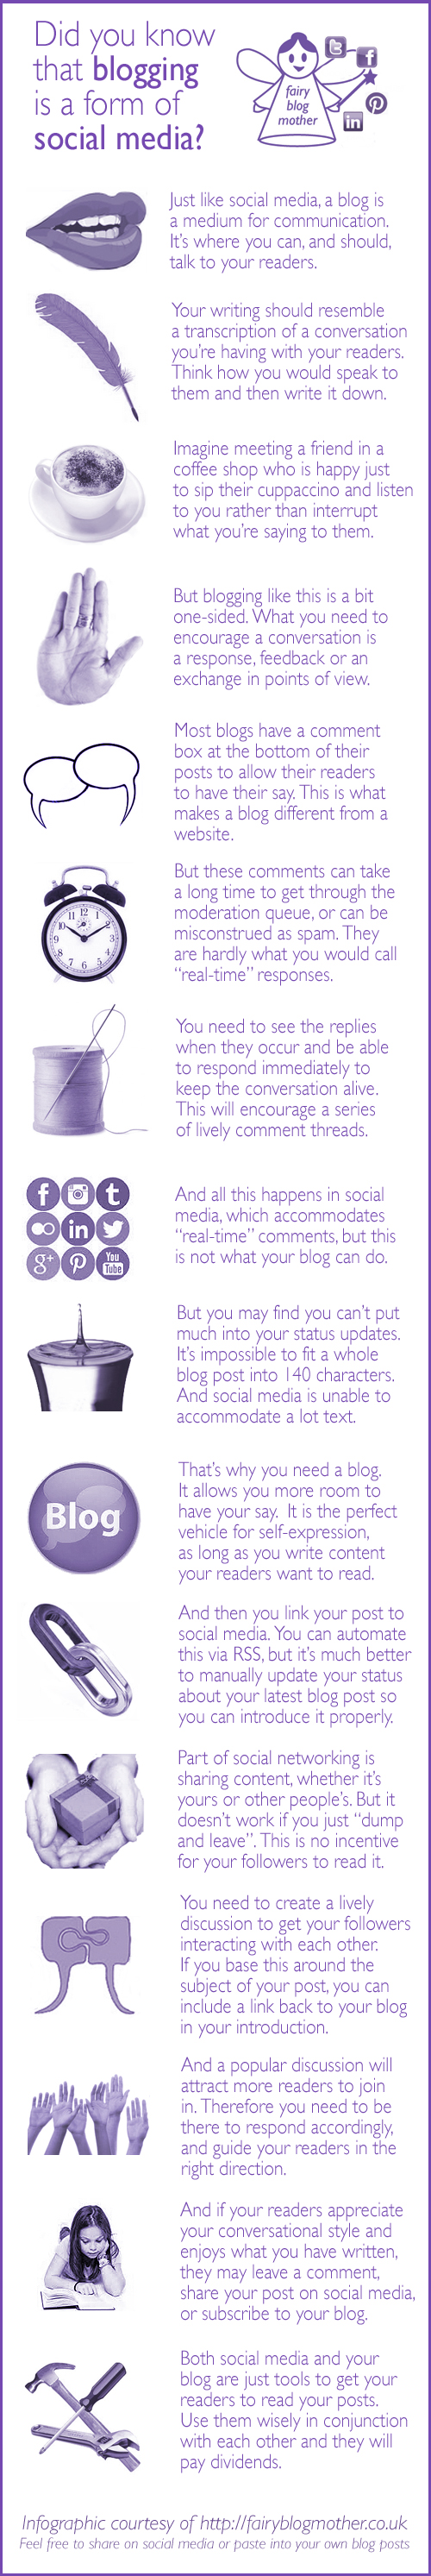 Did you know that blogging is a form of social media?